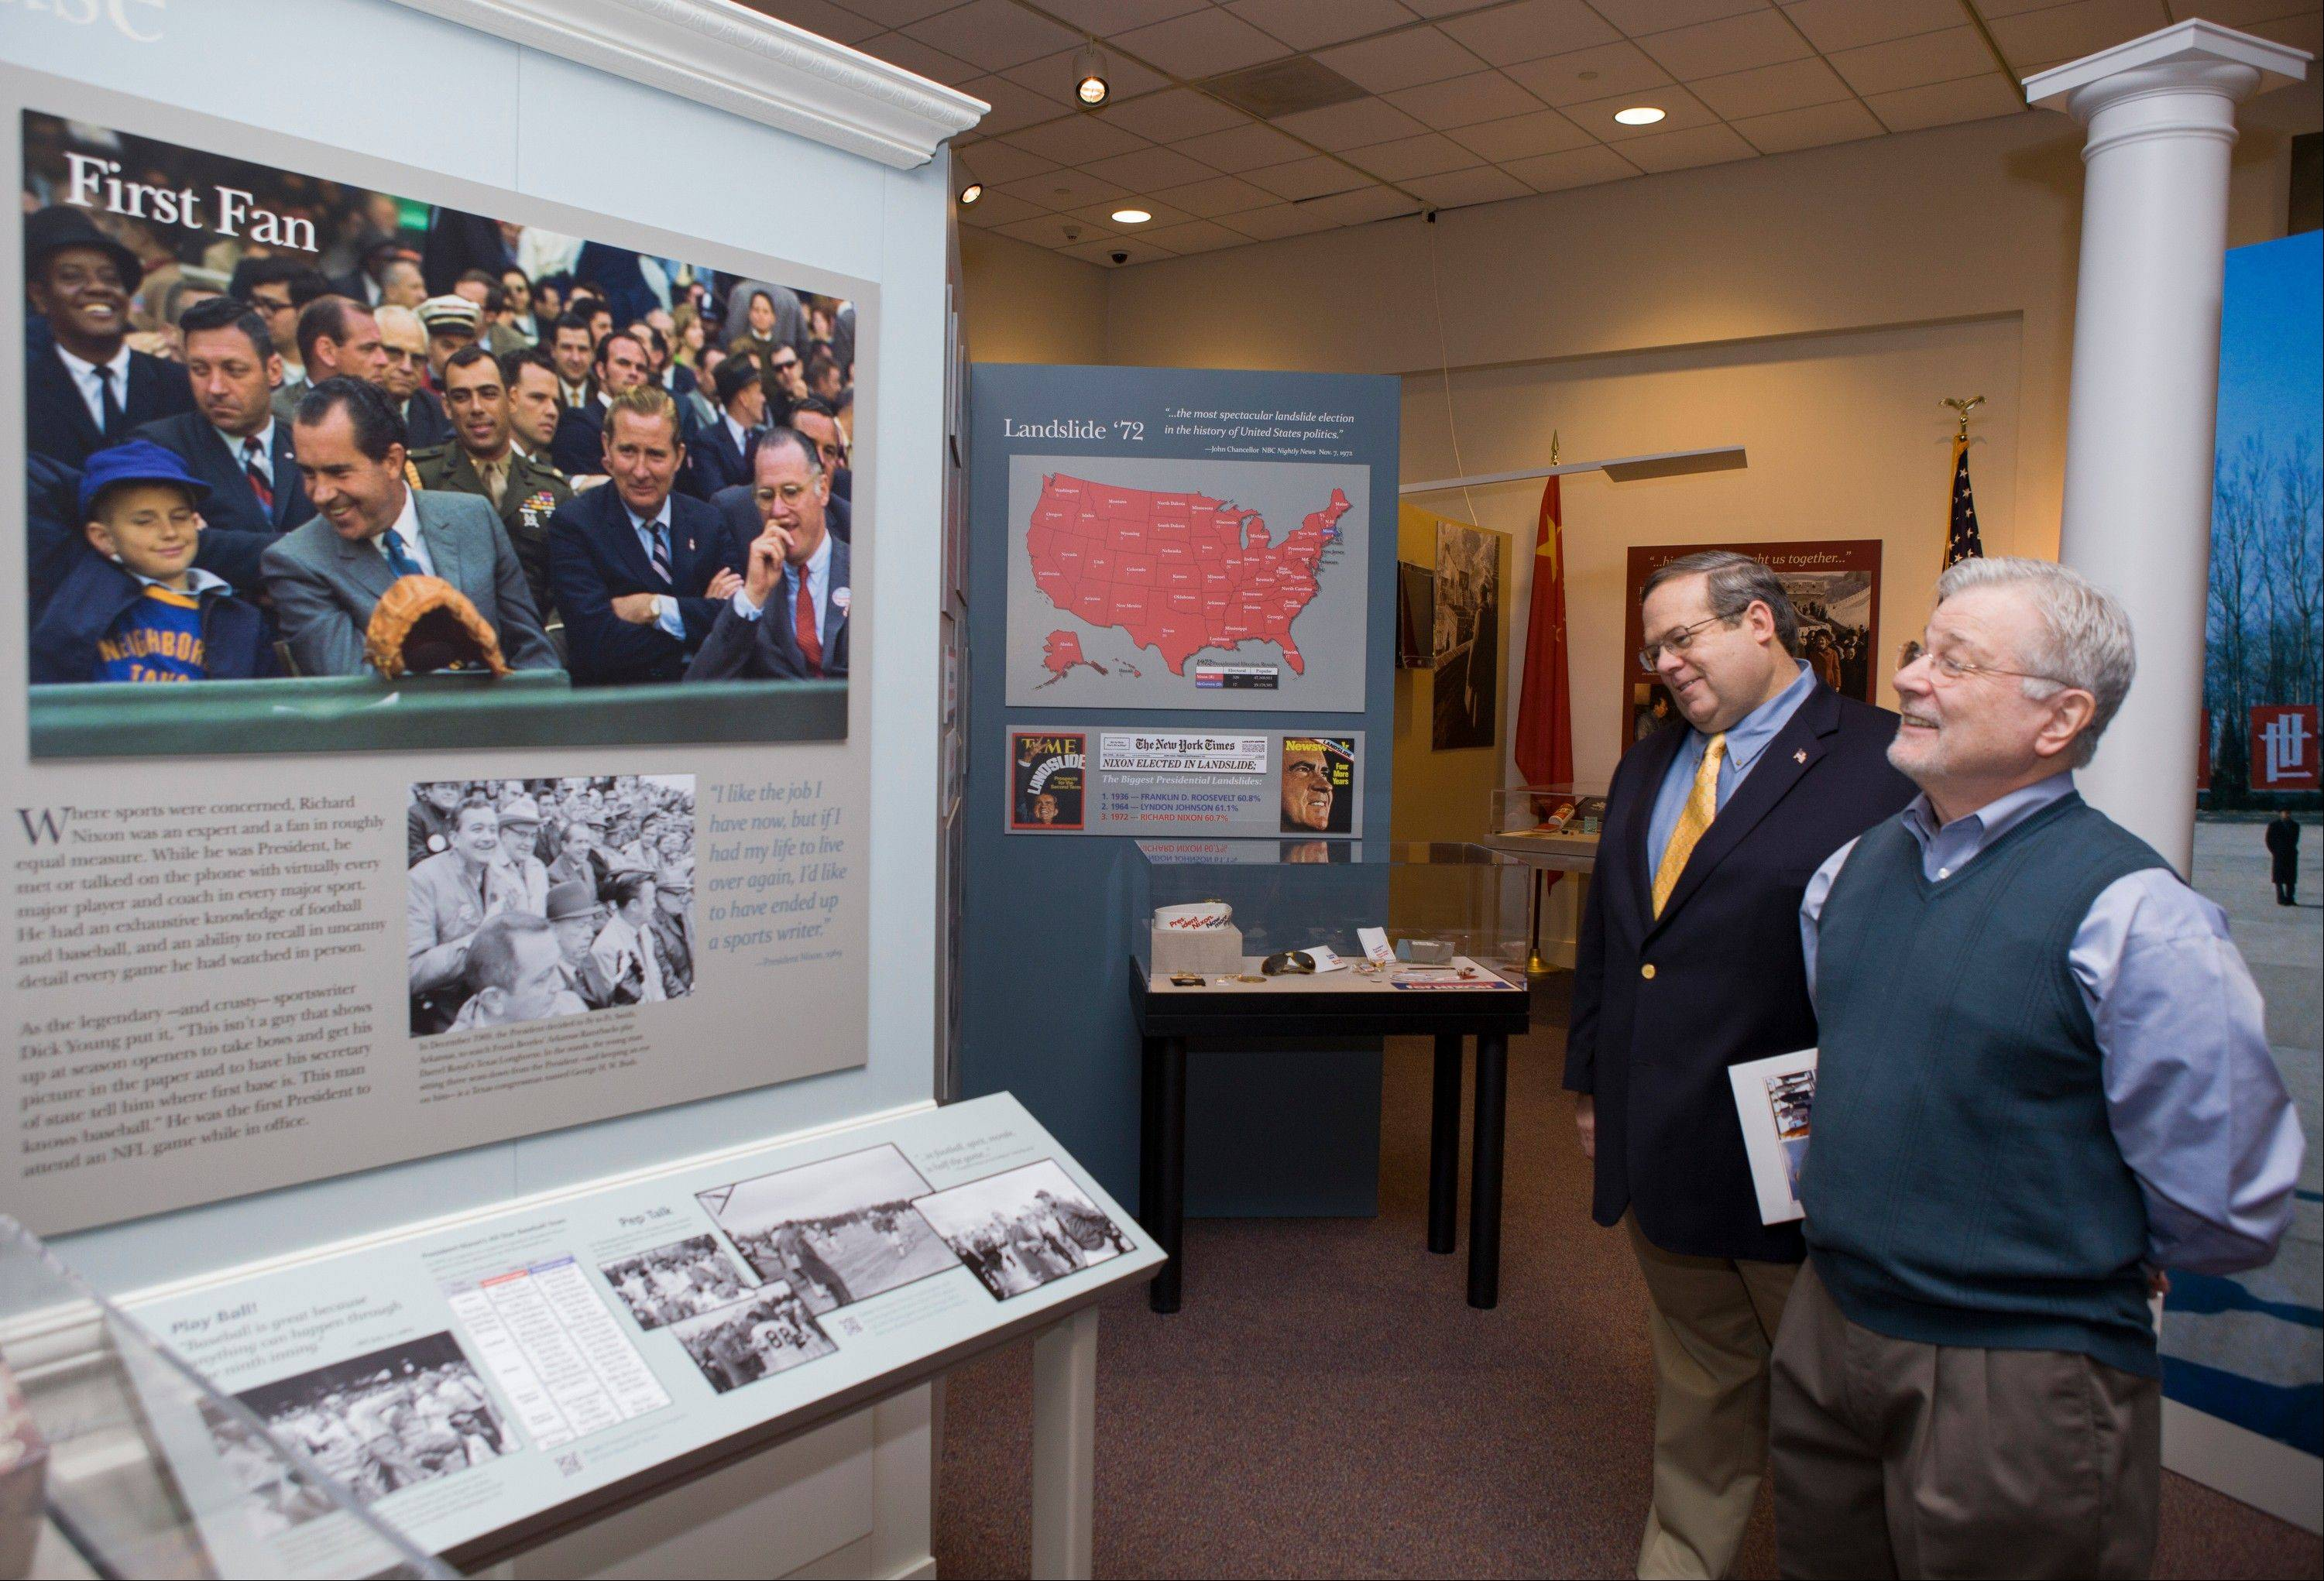 Curator Bob Bostock, a former Nixon aide who designed the original Watergate exhibit, left, and co-curator Frank Gannon, tour �Patriot. President. Peacemaker,� a new special exhibit opening Feb. 15 at the Richard Nixon Presidential Library and Museum in Yorba Linda, Calif.